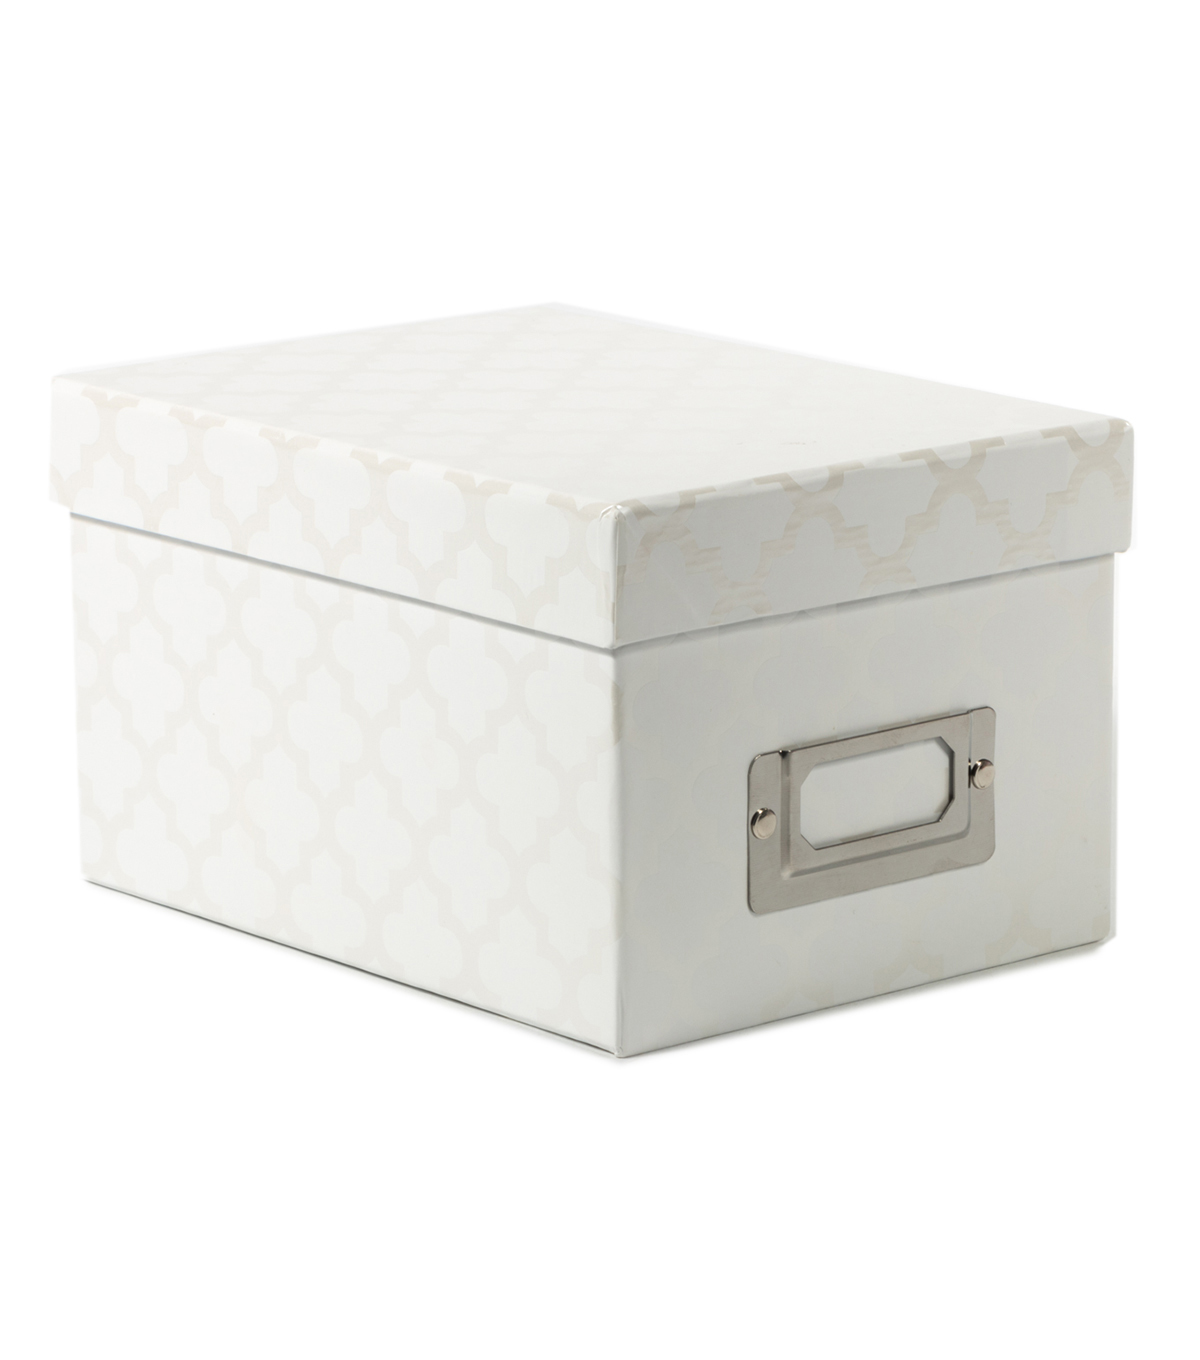 DCWV Mini Box: White with quatrefoil designs